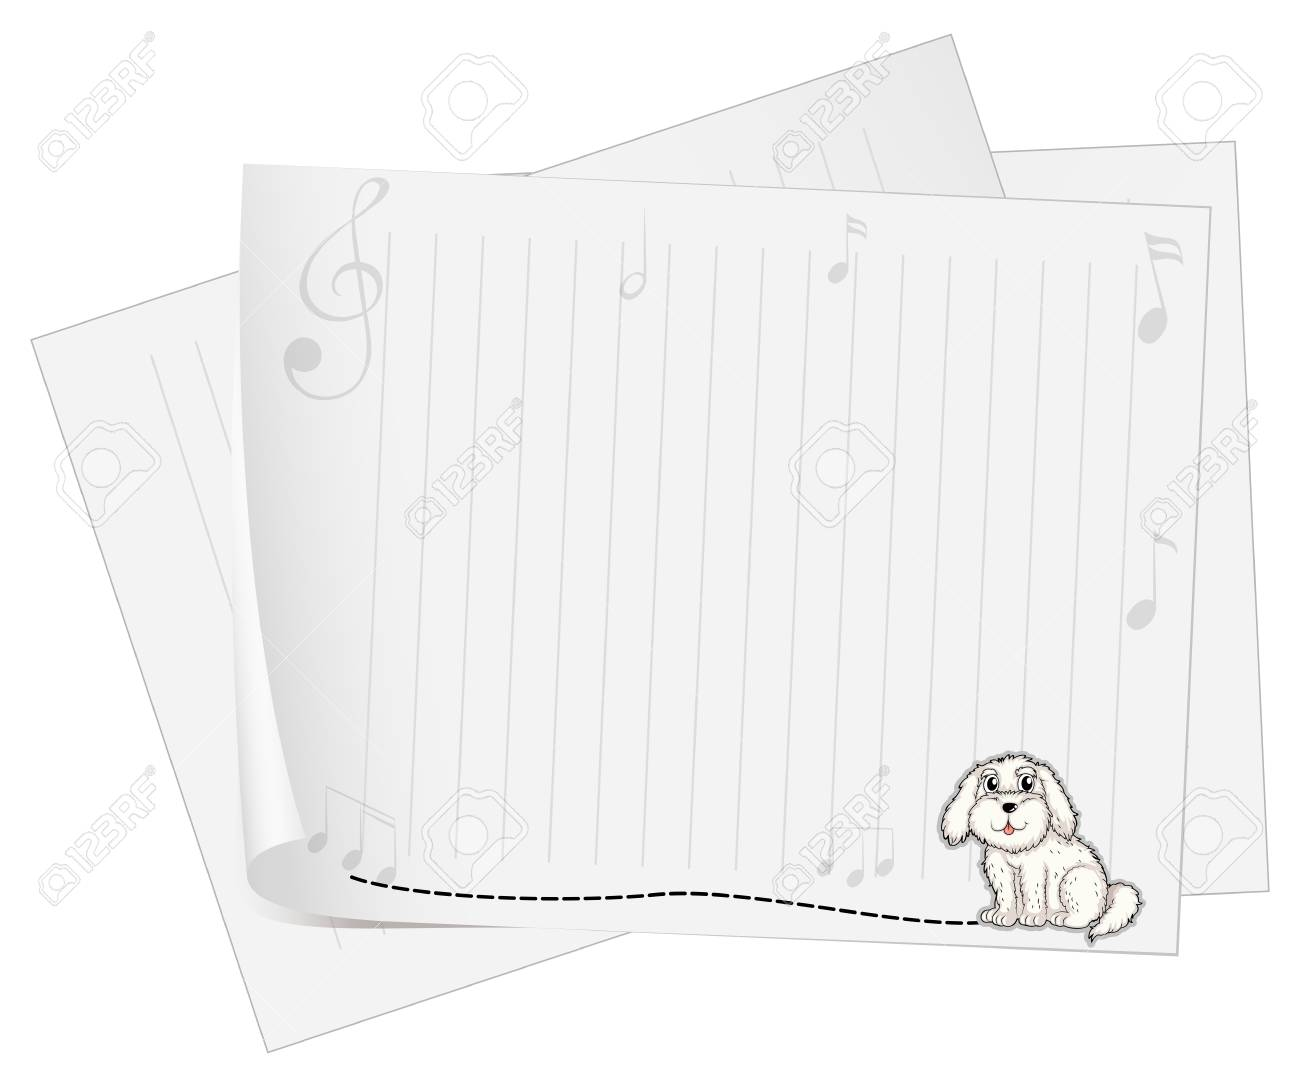 Illustration of an empty piece of paper with an animal design on a white background Stock Vector - 18052857